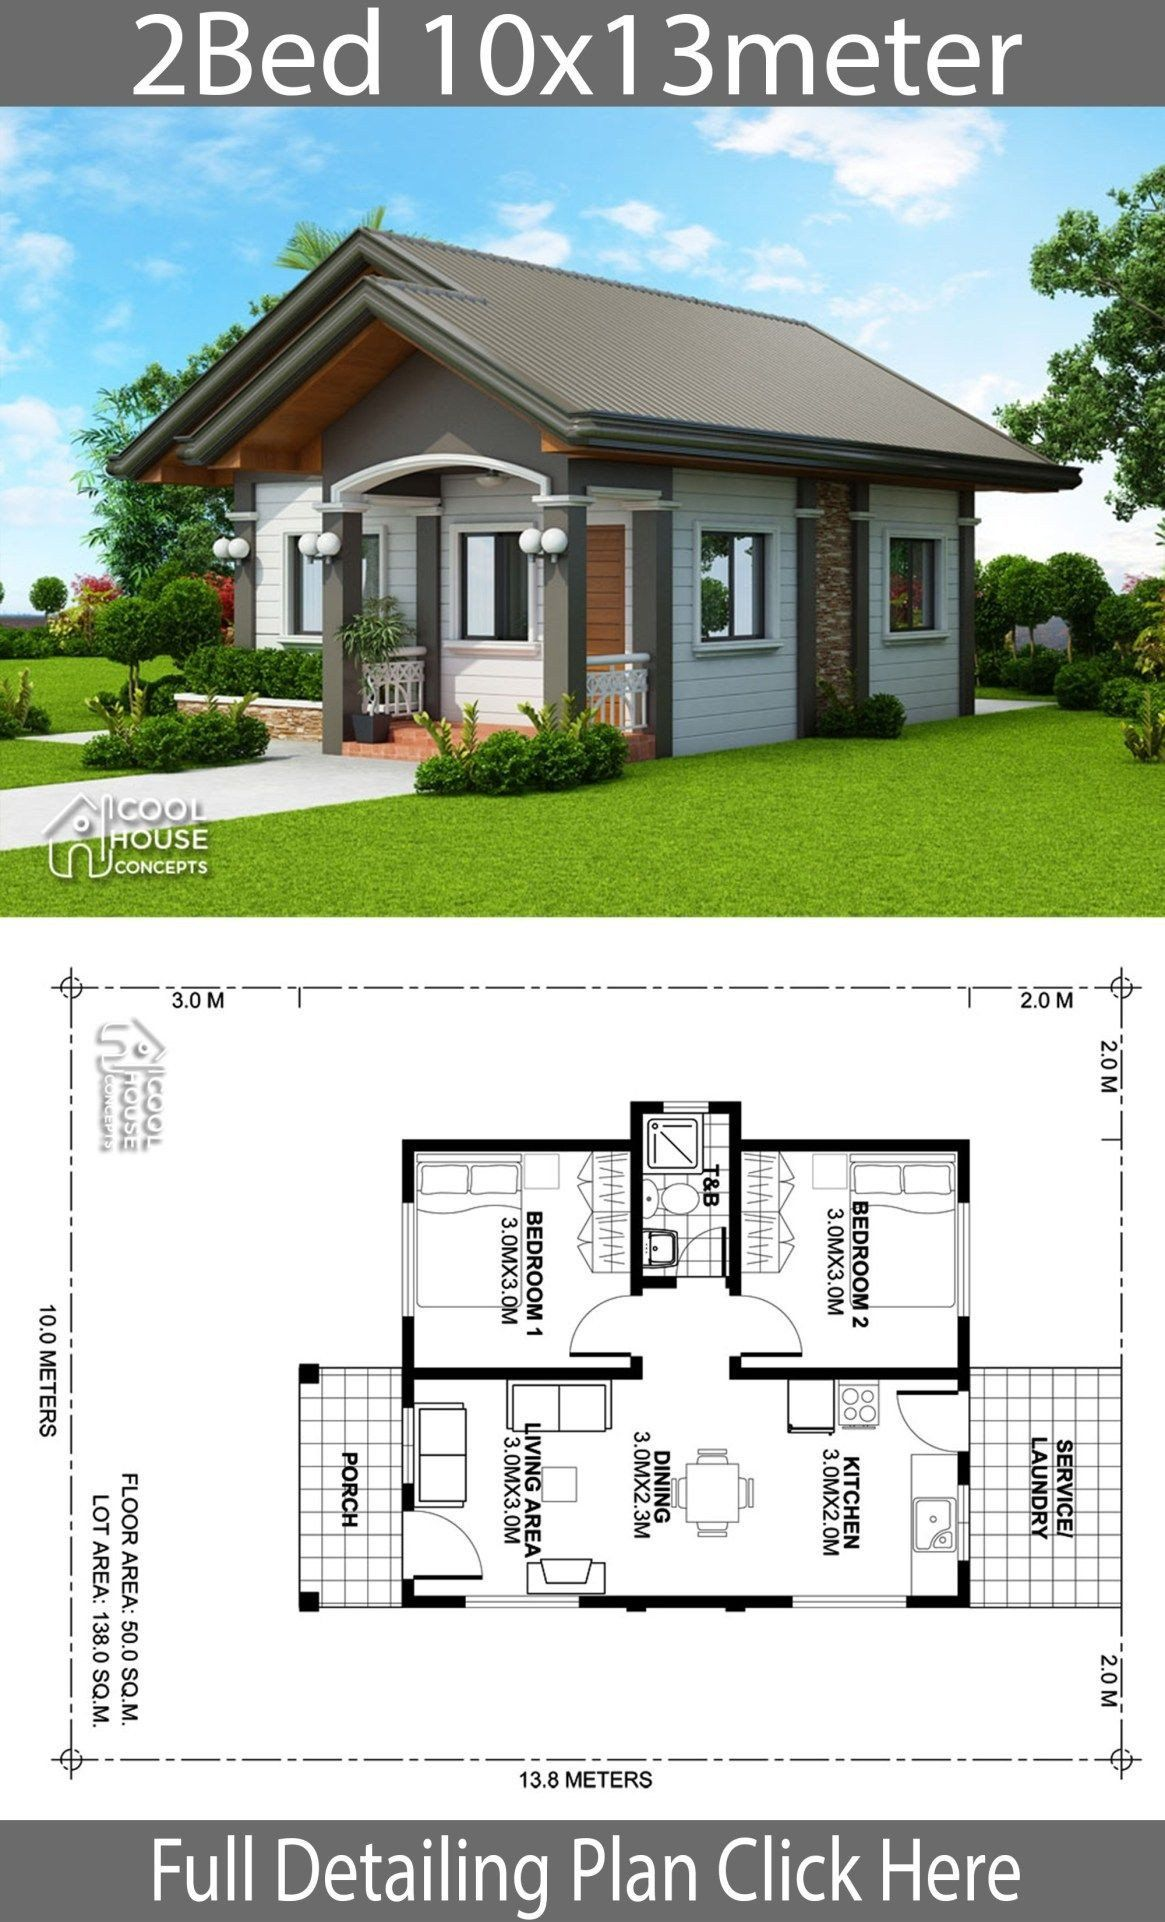 Modern House Plans Bungalow Mini Bungalow Design Kusmun Simple House Design Modern House Plans Modern Bungalow House